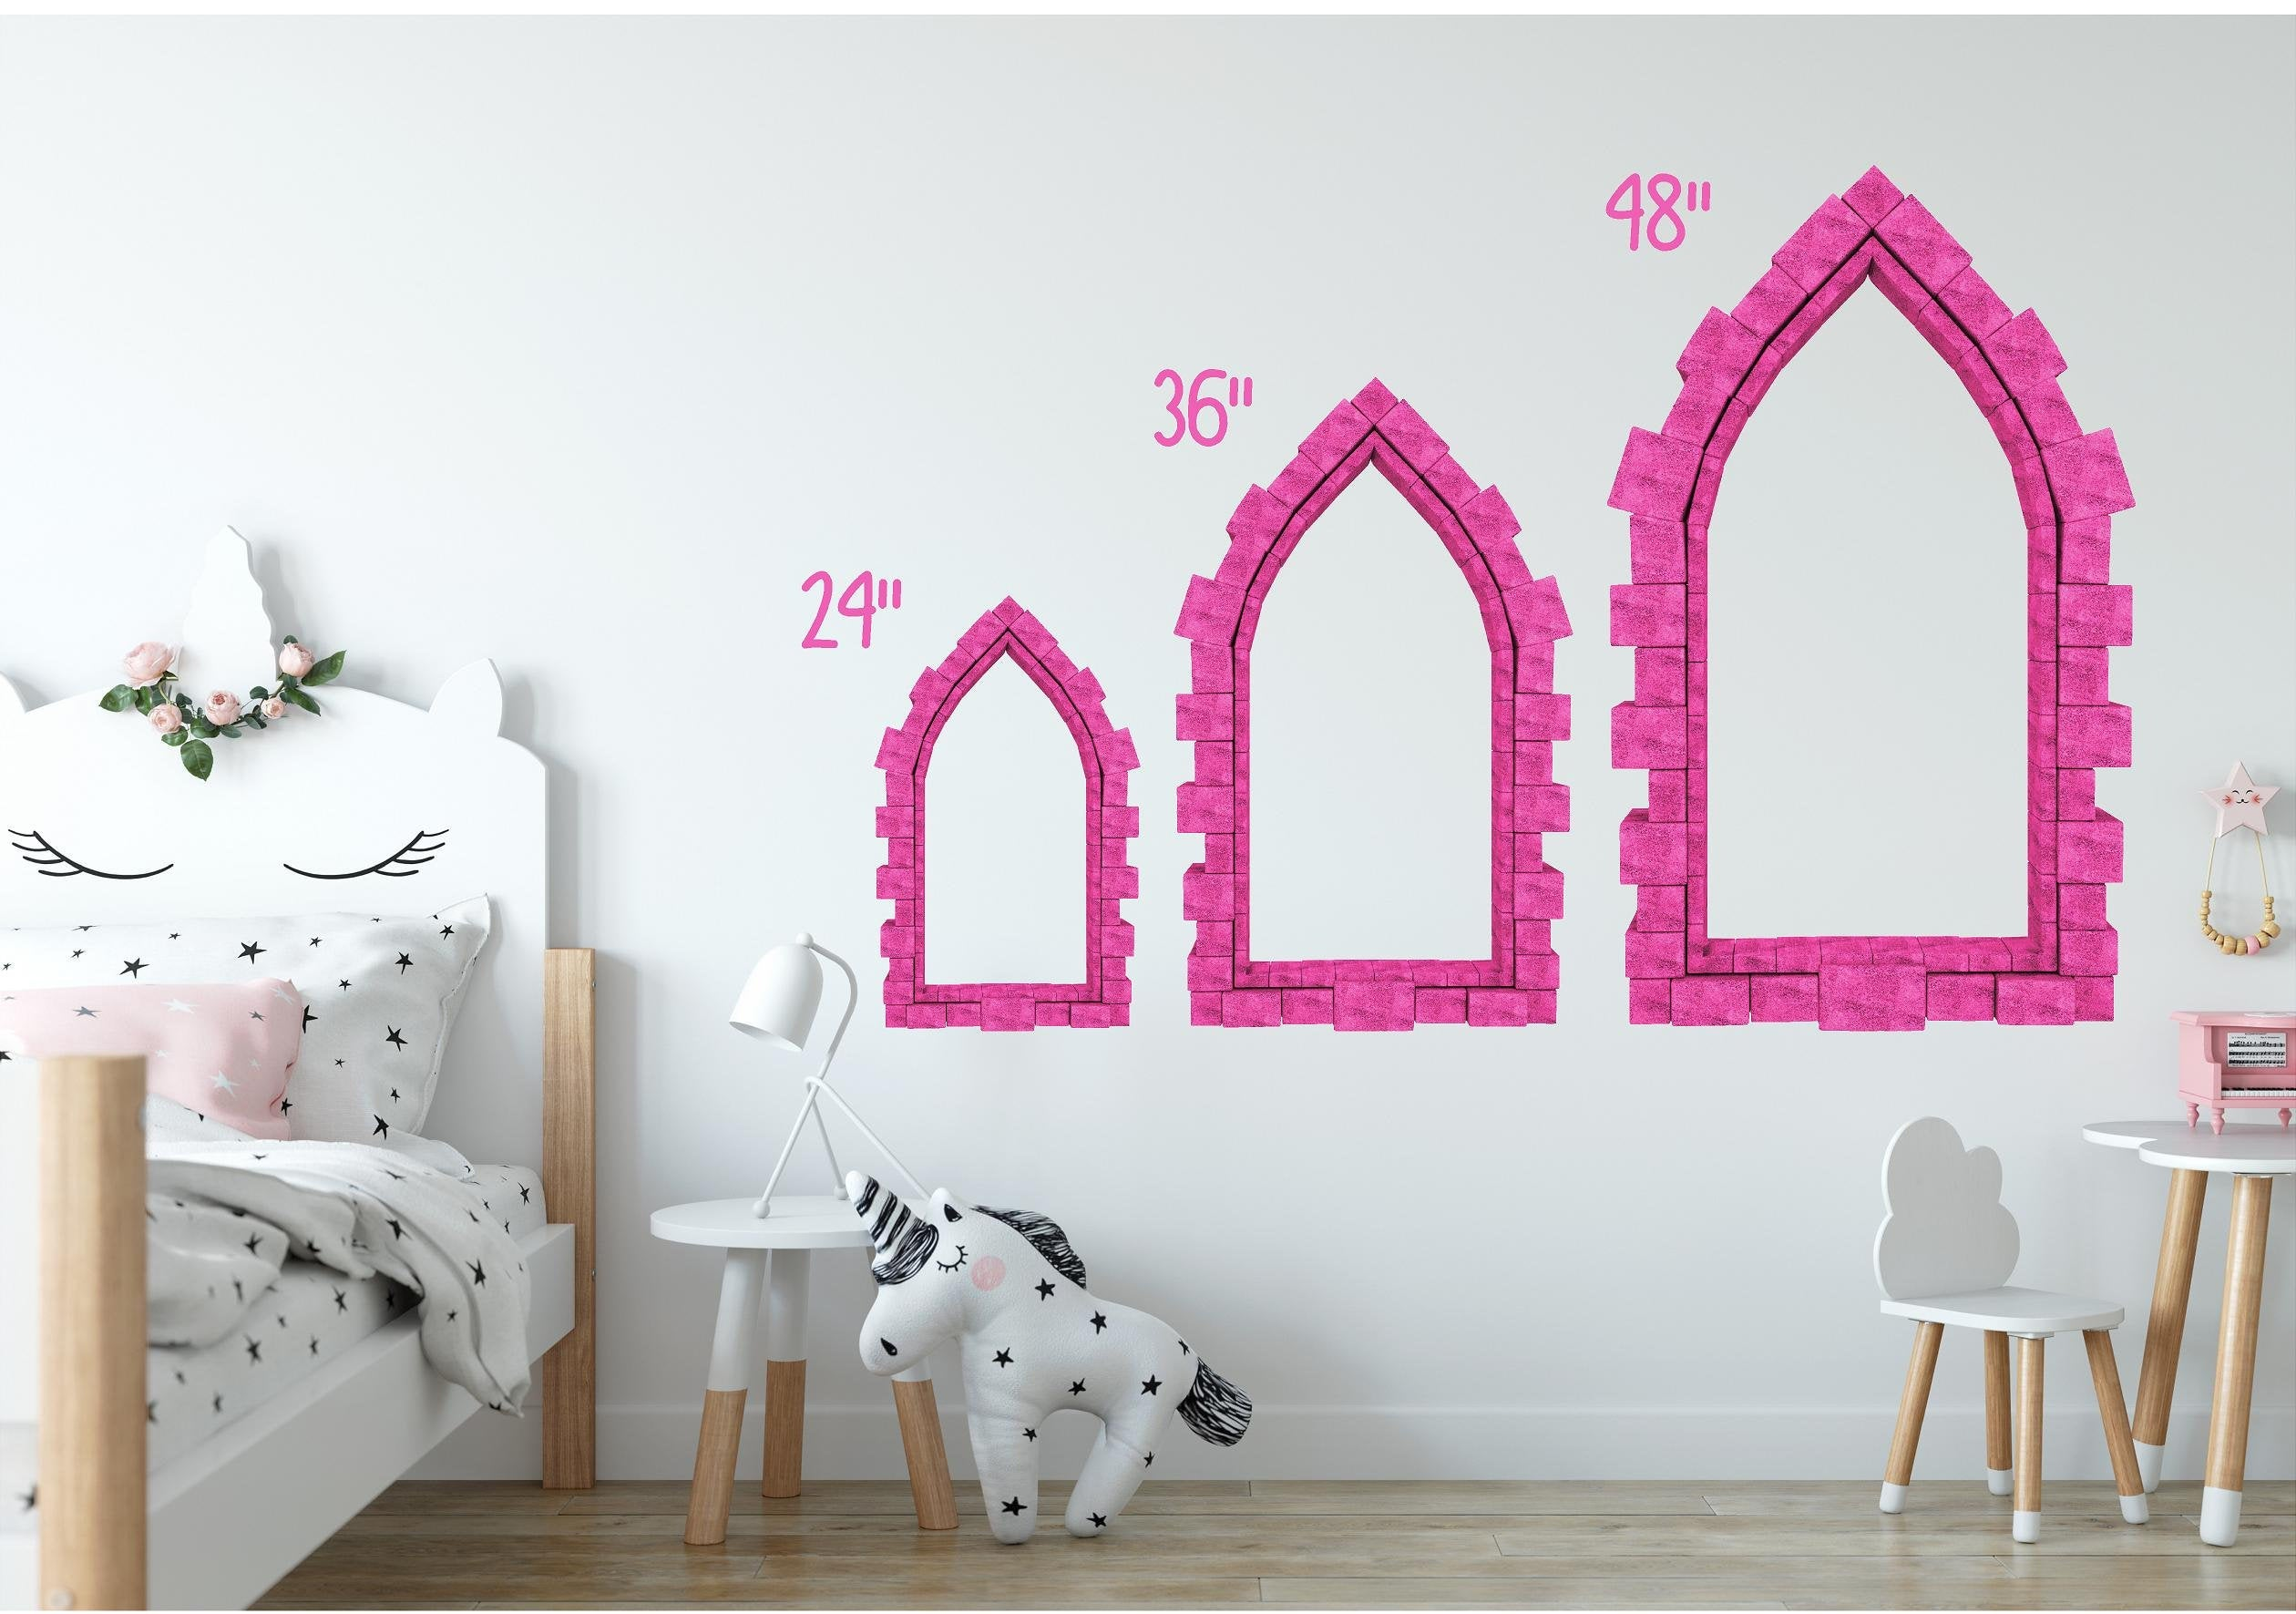 3D Castle Window Jack and the Giant Beanstalk Wall Decal Set of 2 Removable Fabric Vinyl Fantasy Wall Sticker | DecalBaby